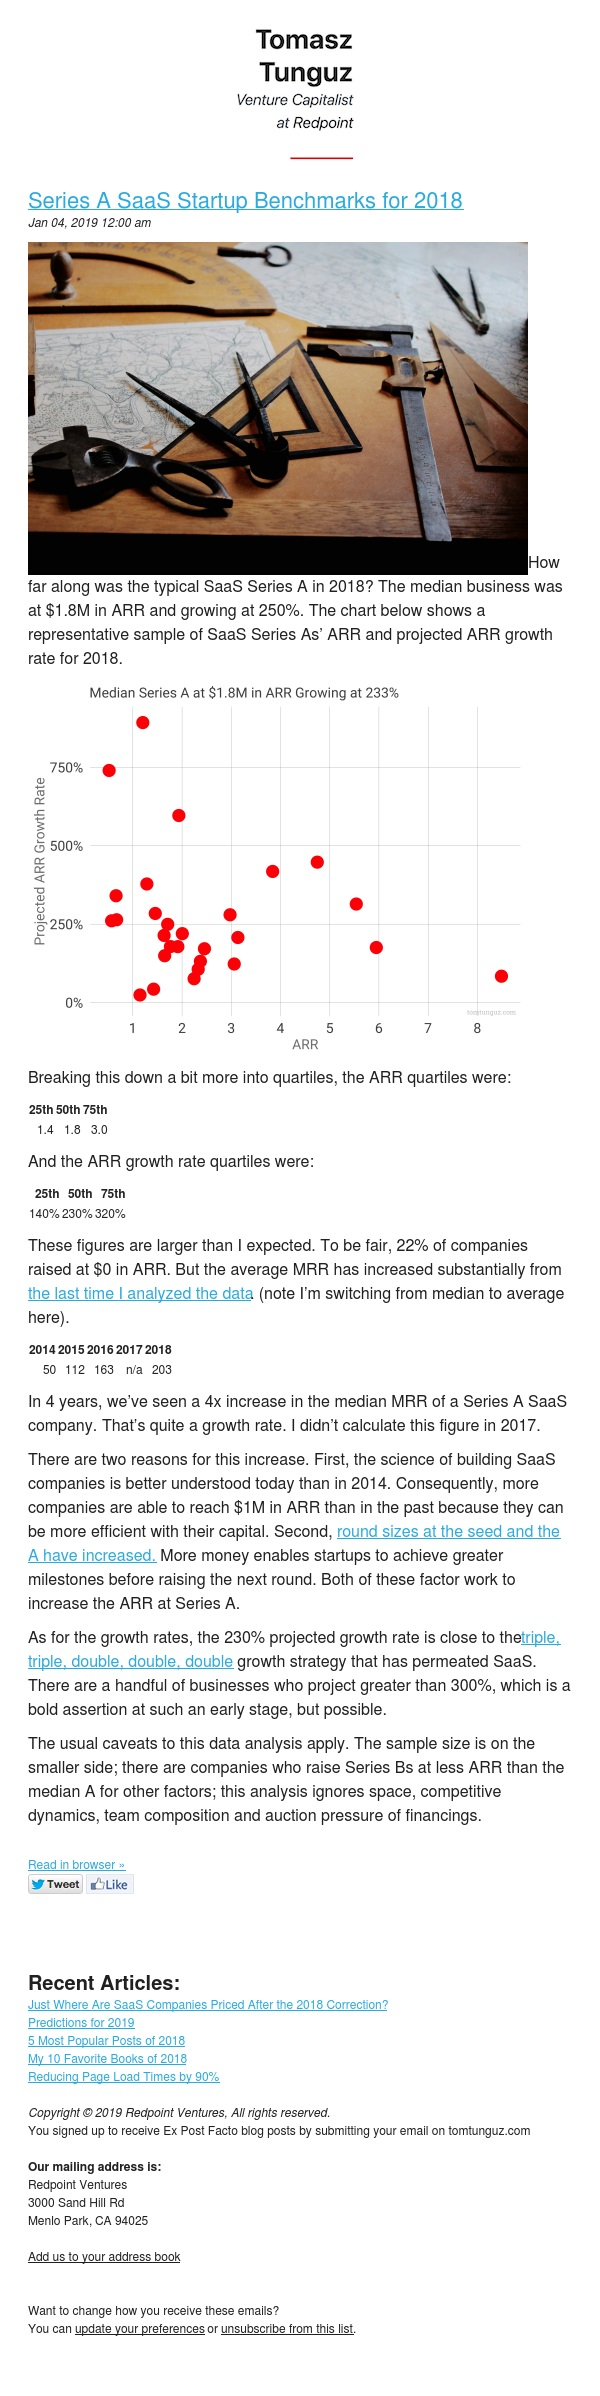 Series A SaaS Startup Benchmarks for 2018